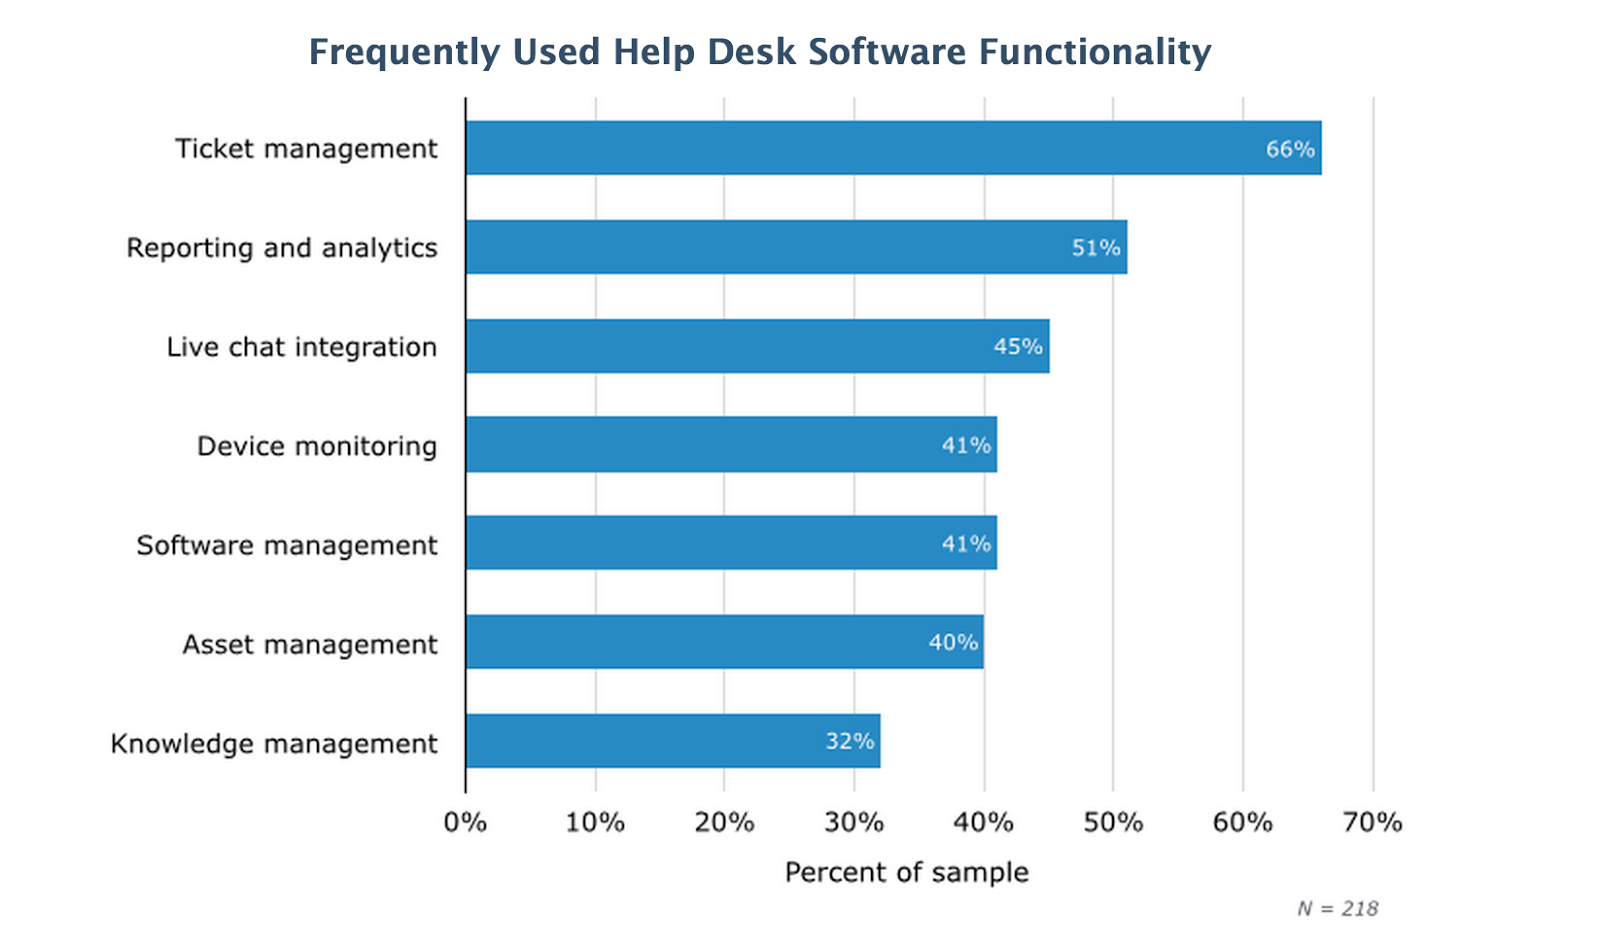 bar graph showing frequently used help desk software functionality